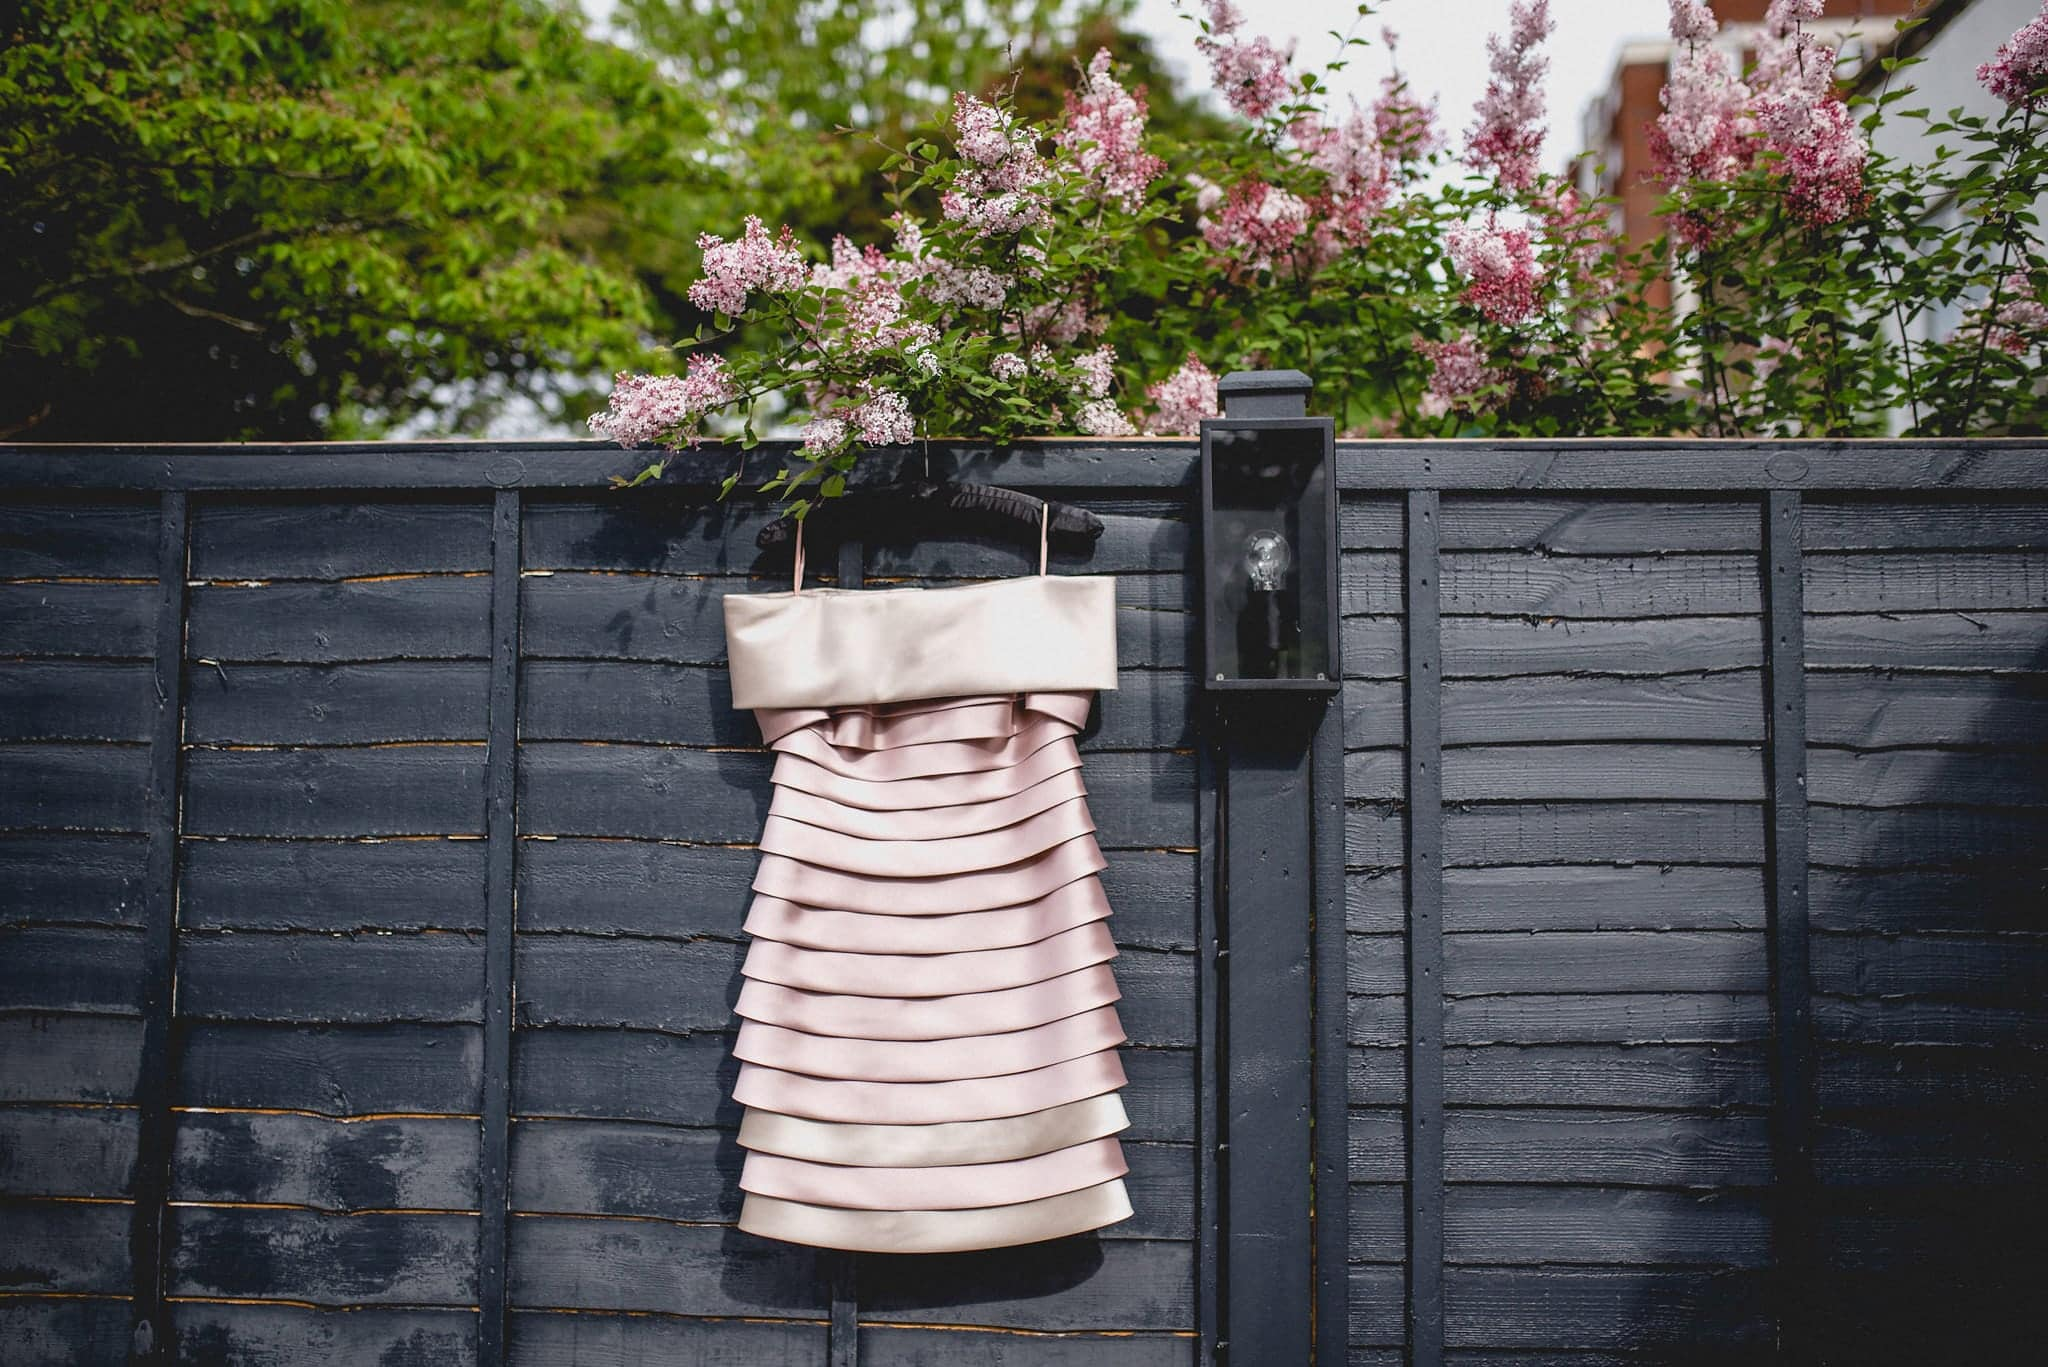 Alternative ruffled pink wedding dress hanging on black fence with lilac in the background